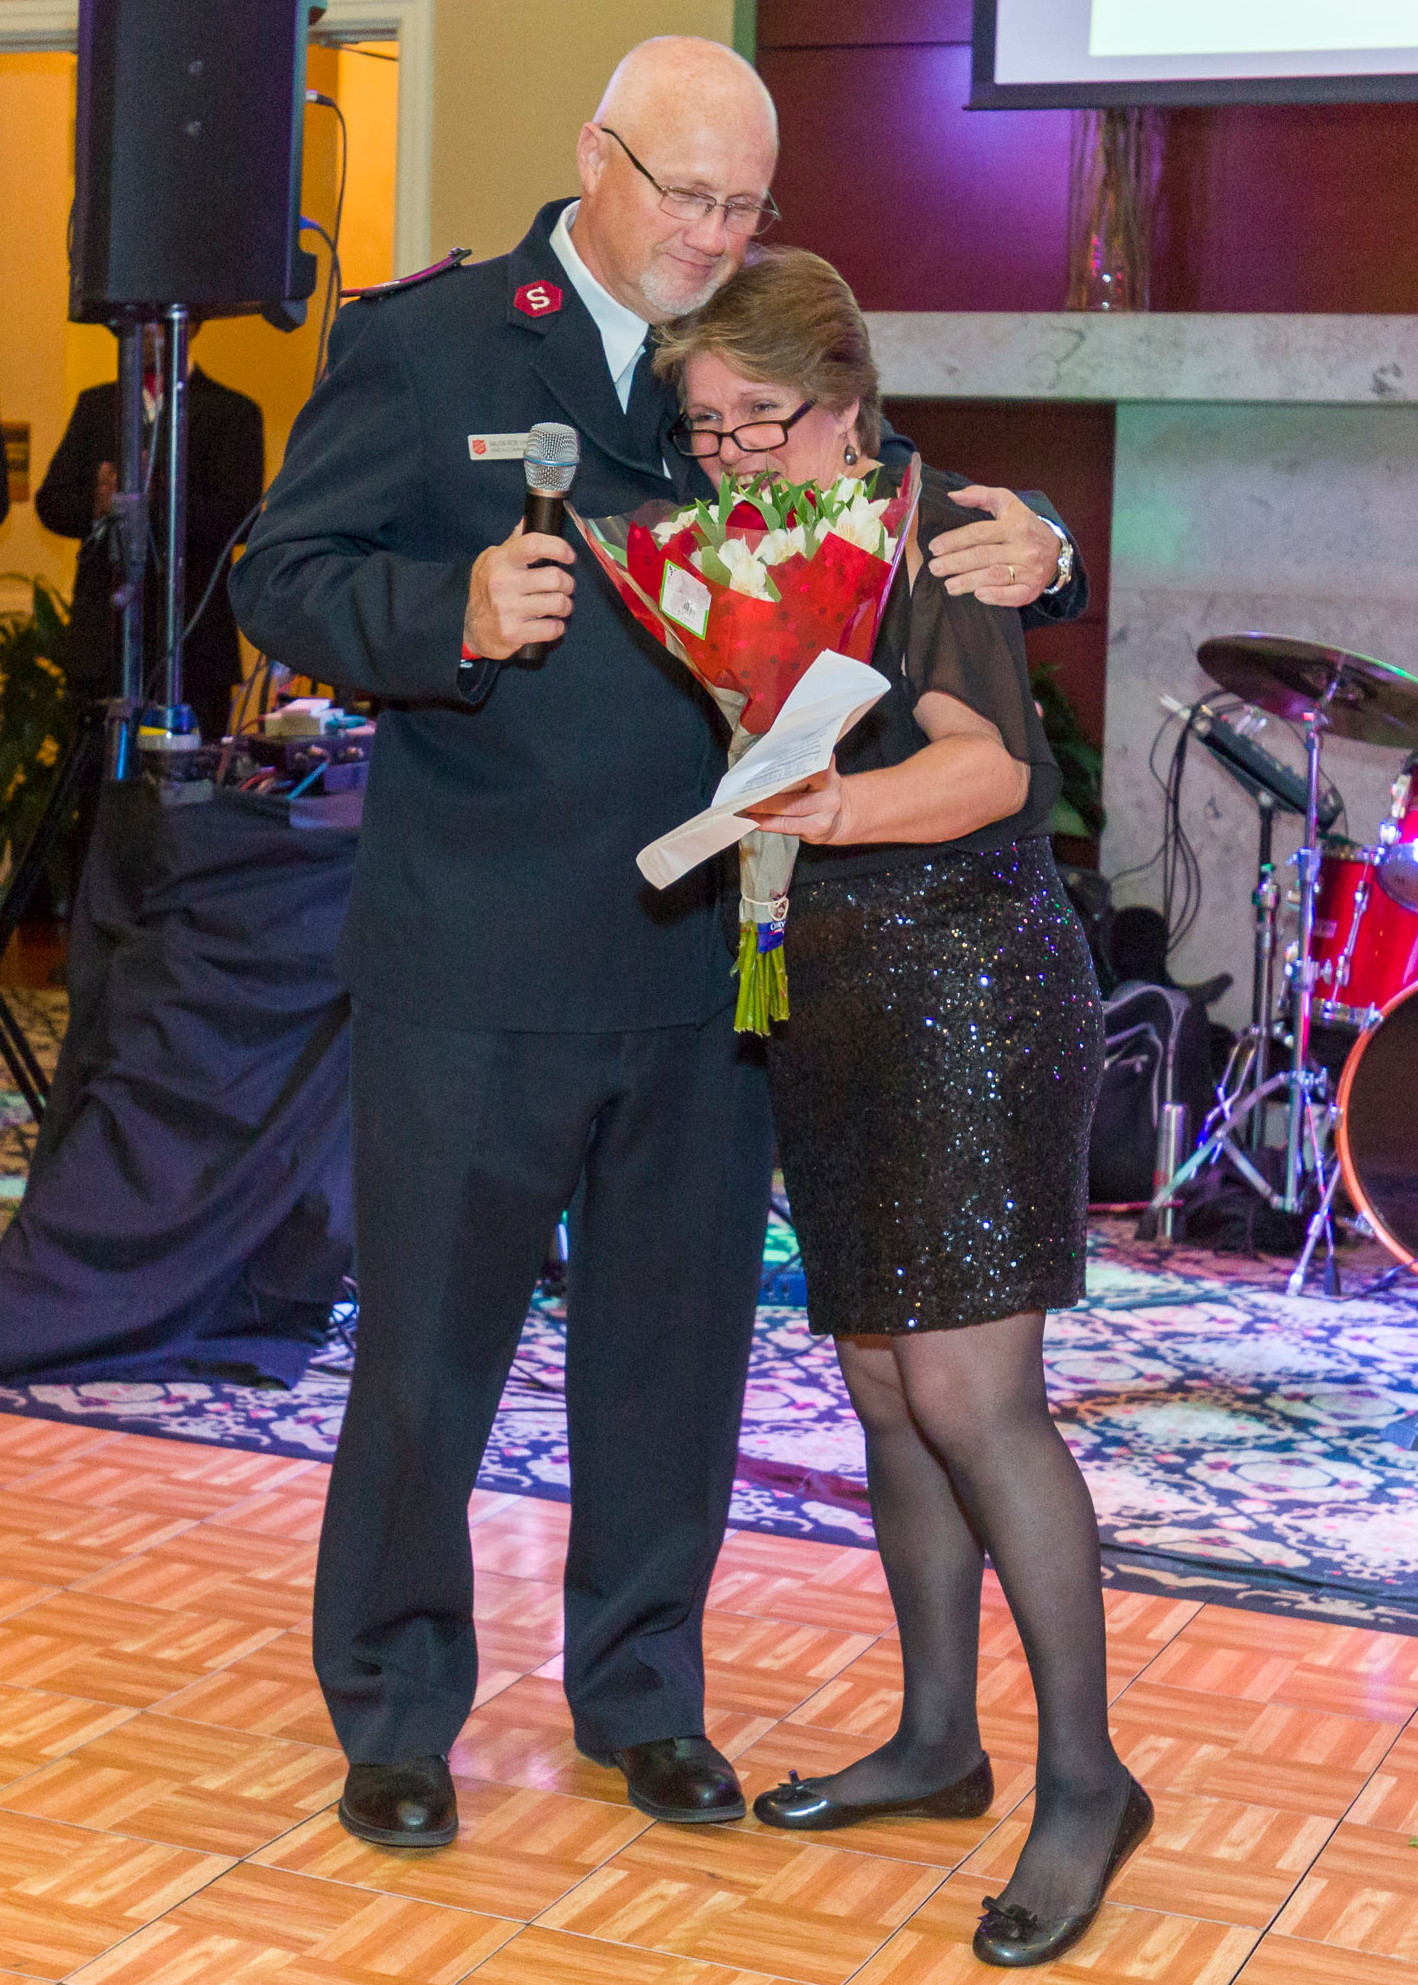 Major Rob Vincent congratulates former shelter resident Wendy Shaw at the 2016 Red Shield Ball on her success since graduating from the program.